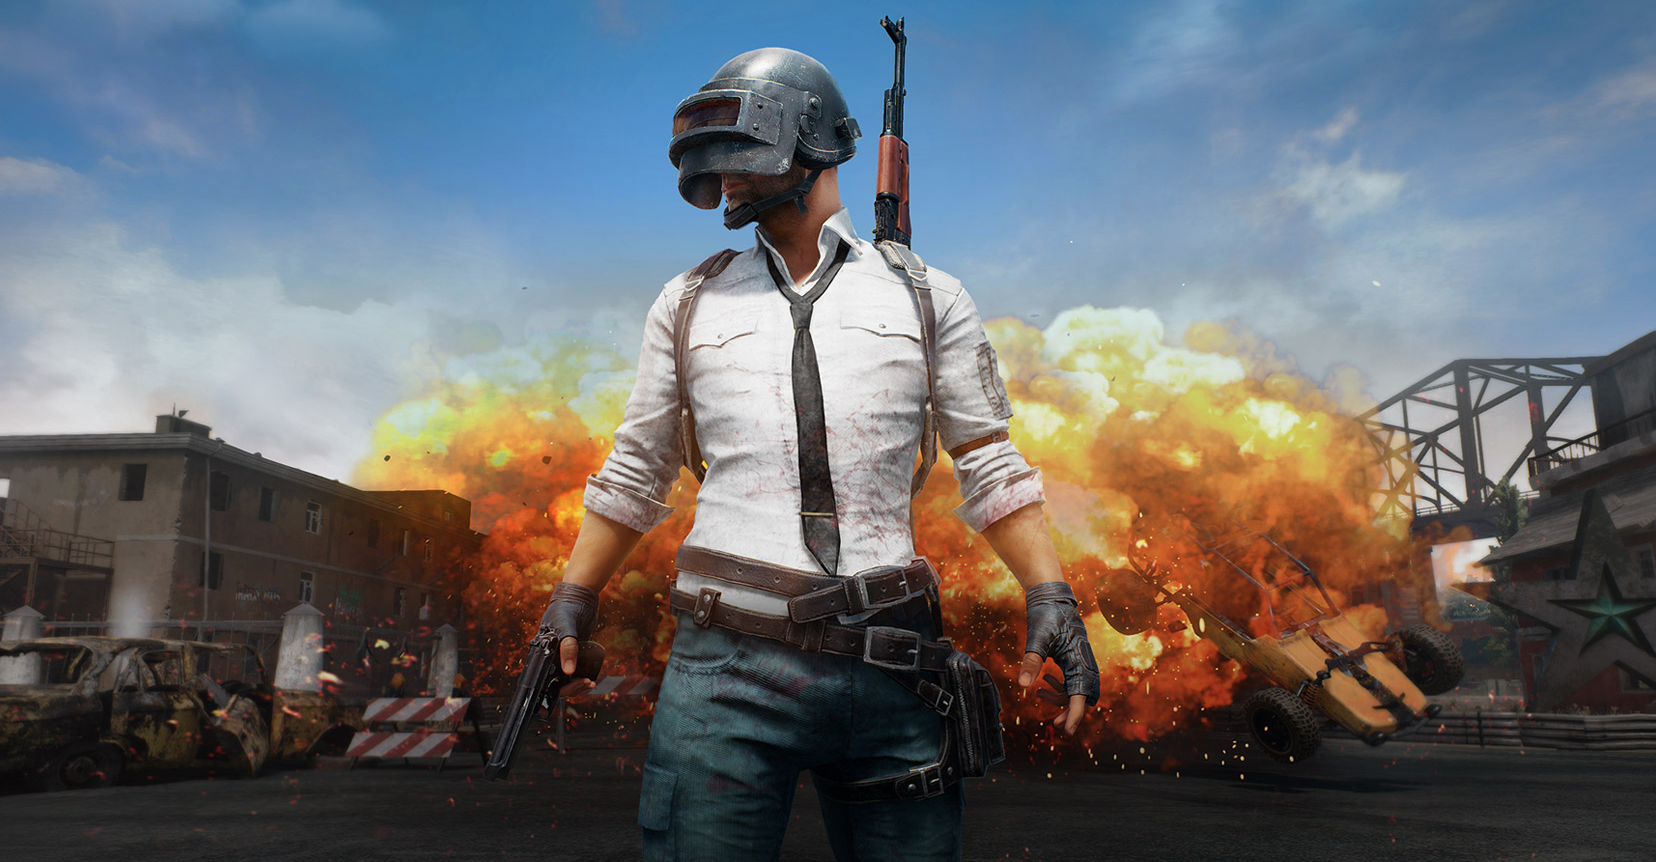 PlayerUnknown's Battlegrounds Developer Bluehole Changes its Name